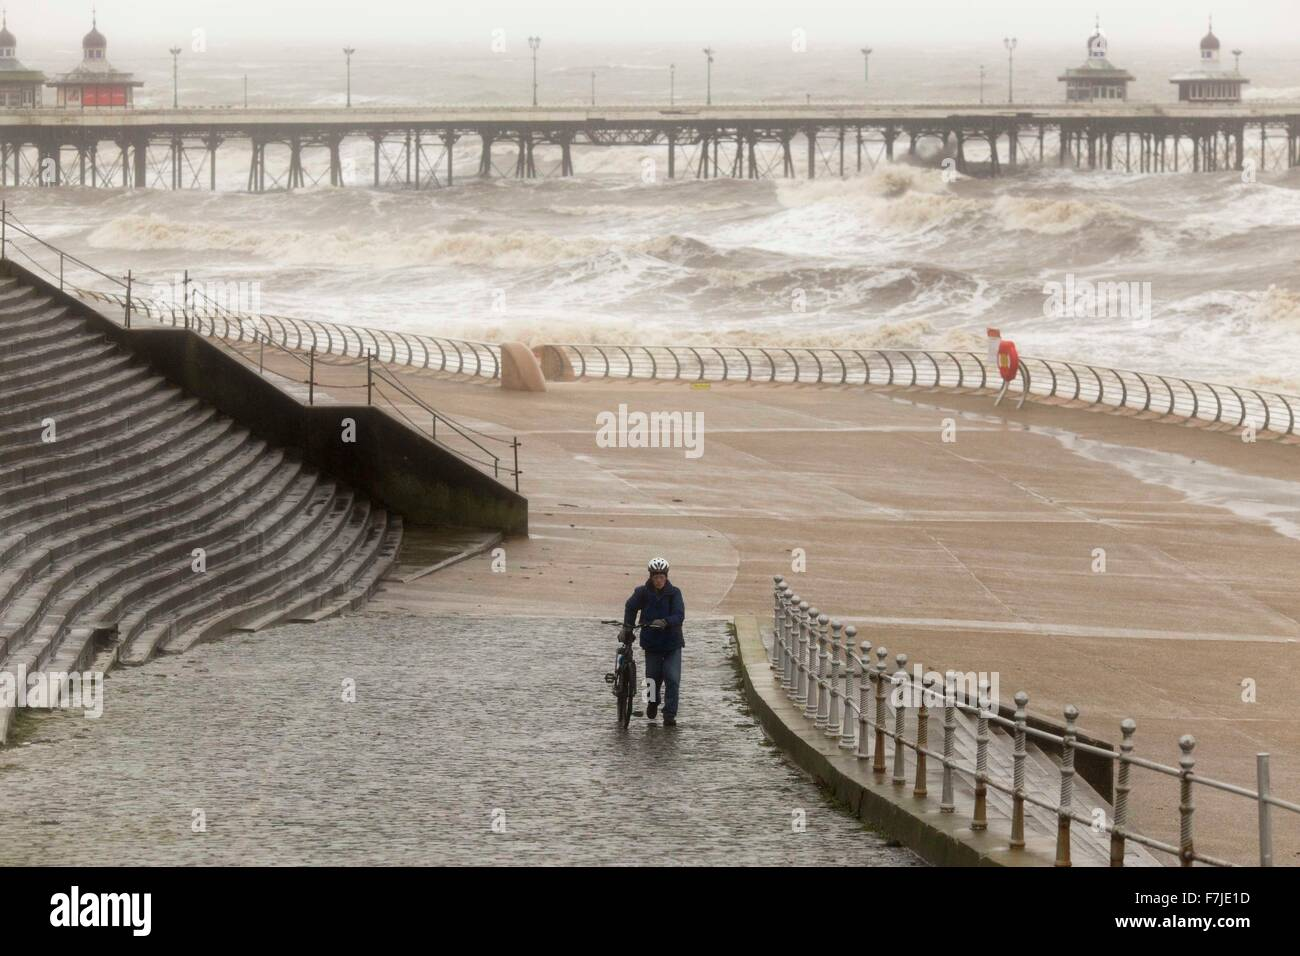 30/11/15 . BLACKPOOL , England.   Heavy rain and strong winds hit Blackpool today (Mon 30th November 2015) - Stock Image